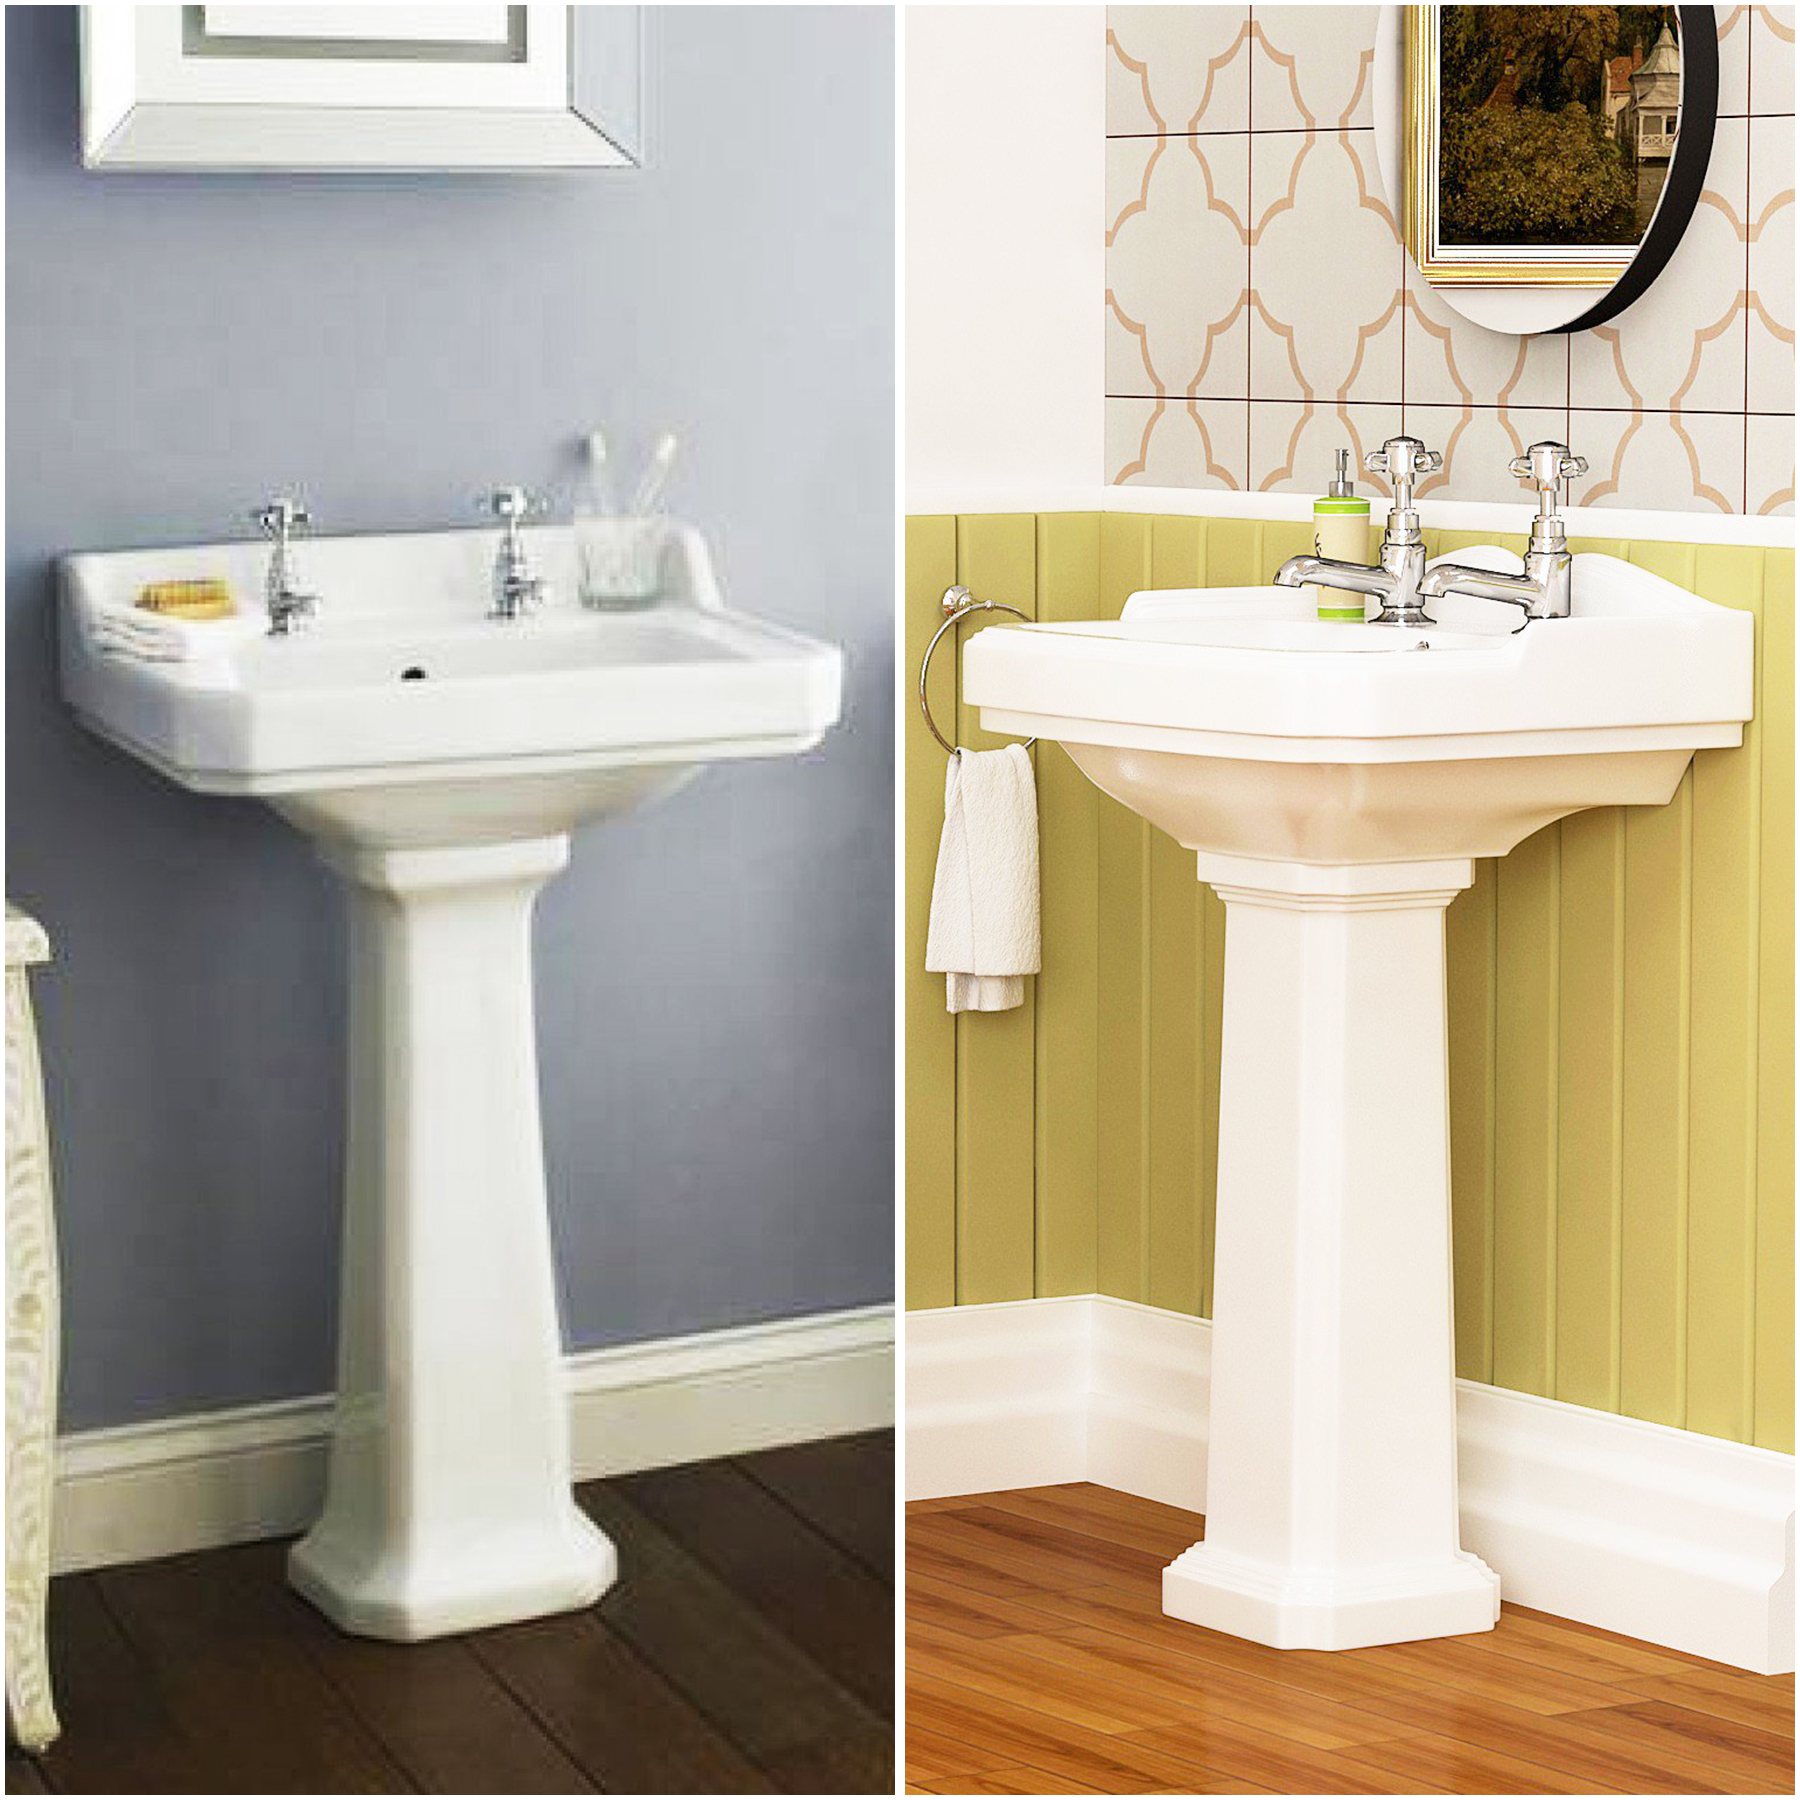 Delicieux Details About Traditional Victorian Style White Ceramic 2TH Bathroom Full  Pedestal Basin Sink